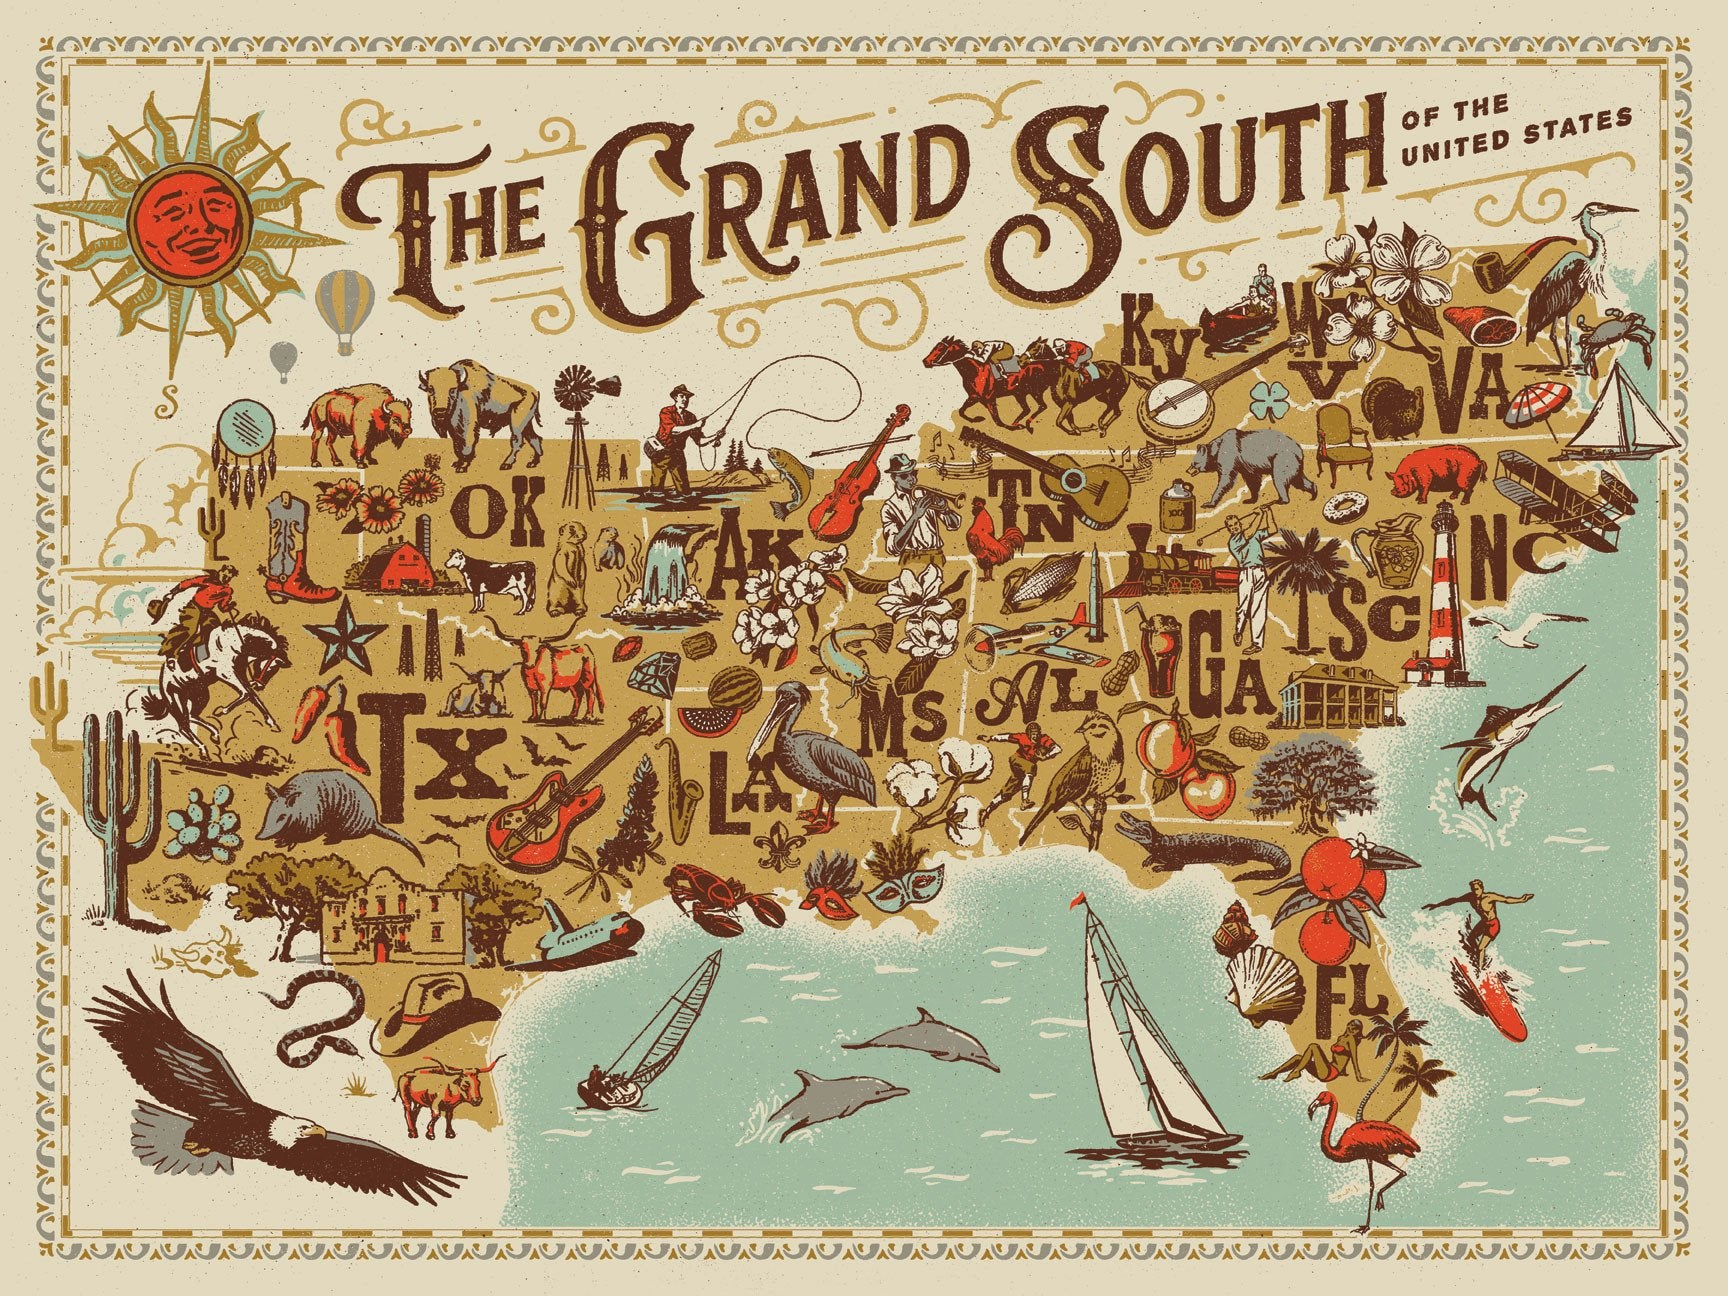 Buy The Grand South, 500 Piece Jigsaw Puzzle from Walking Pants Curiosities, the Most un-General Gift Store in Downtown Memphis, Tennessee!